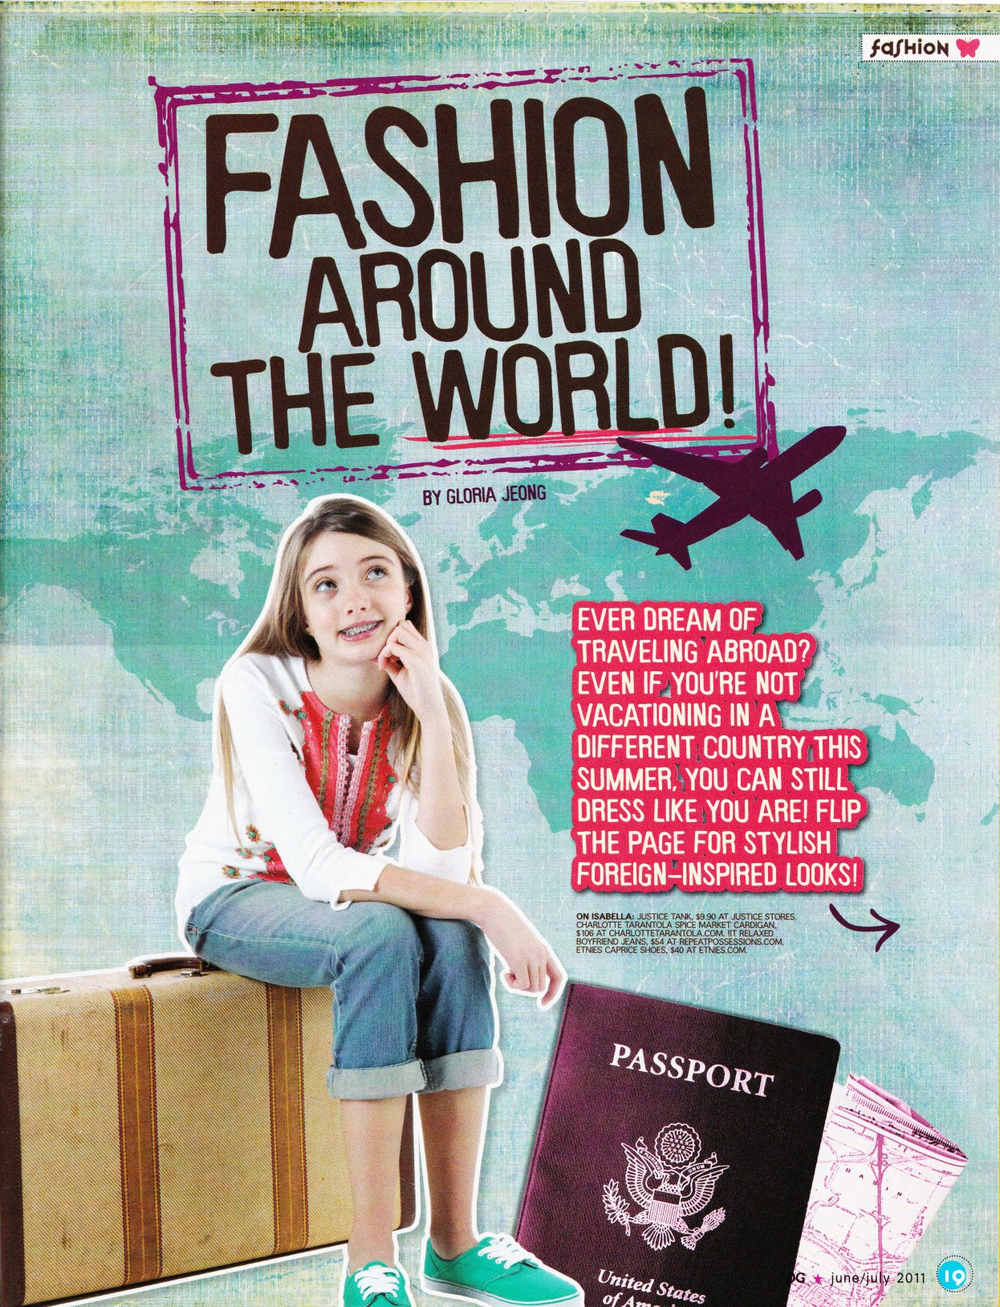 Discovery Girls June-july 2011 clothes 1.jpg